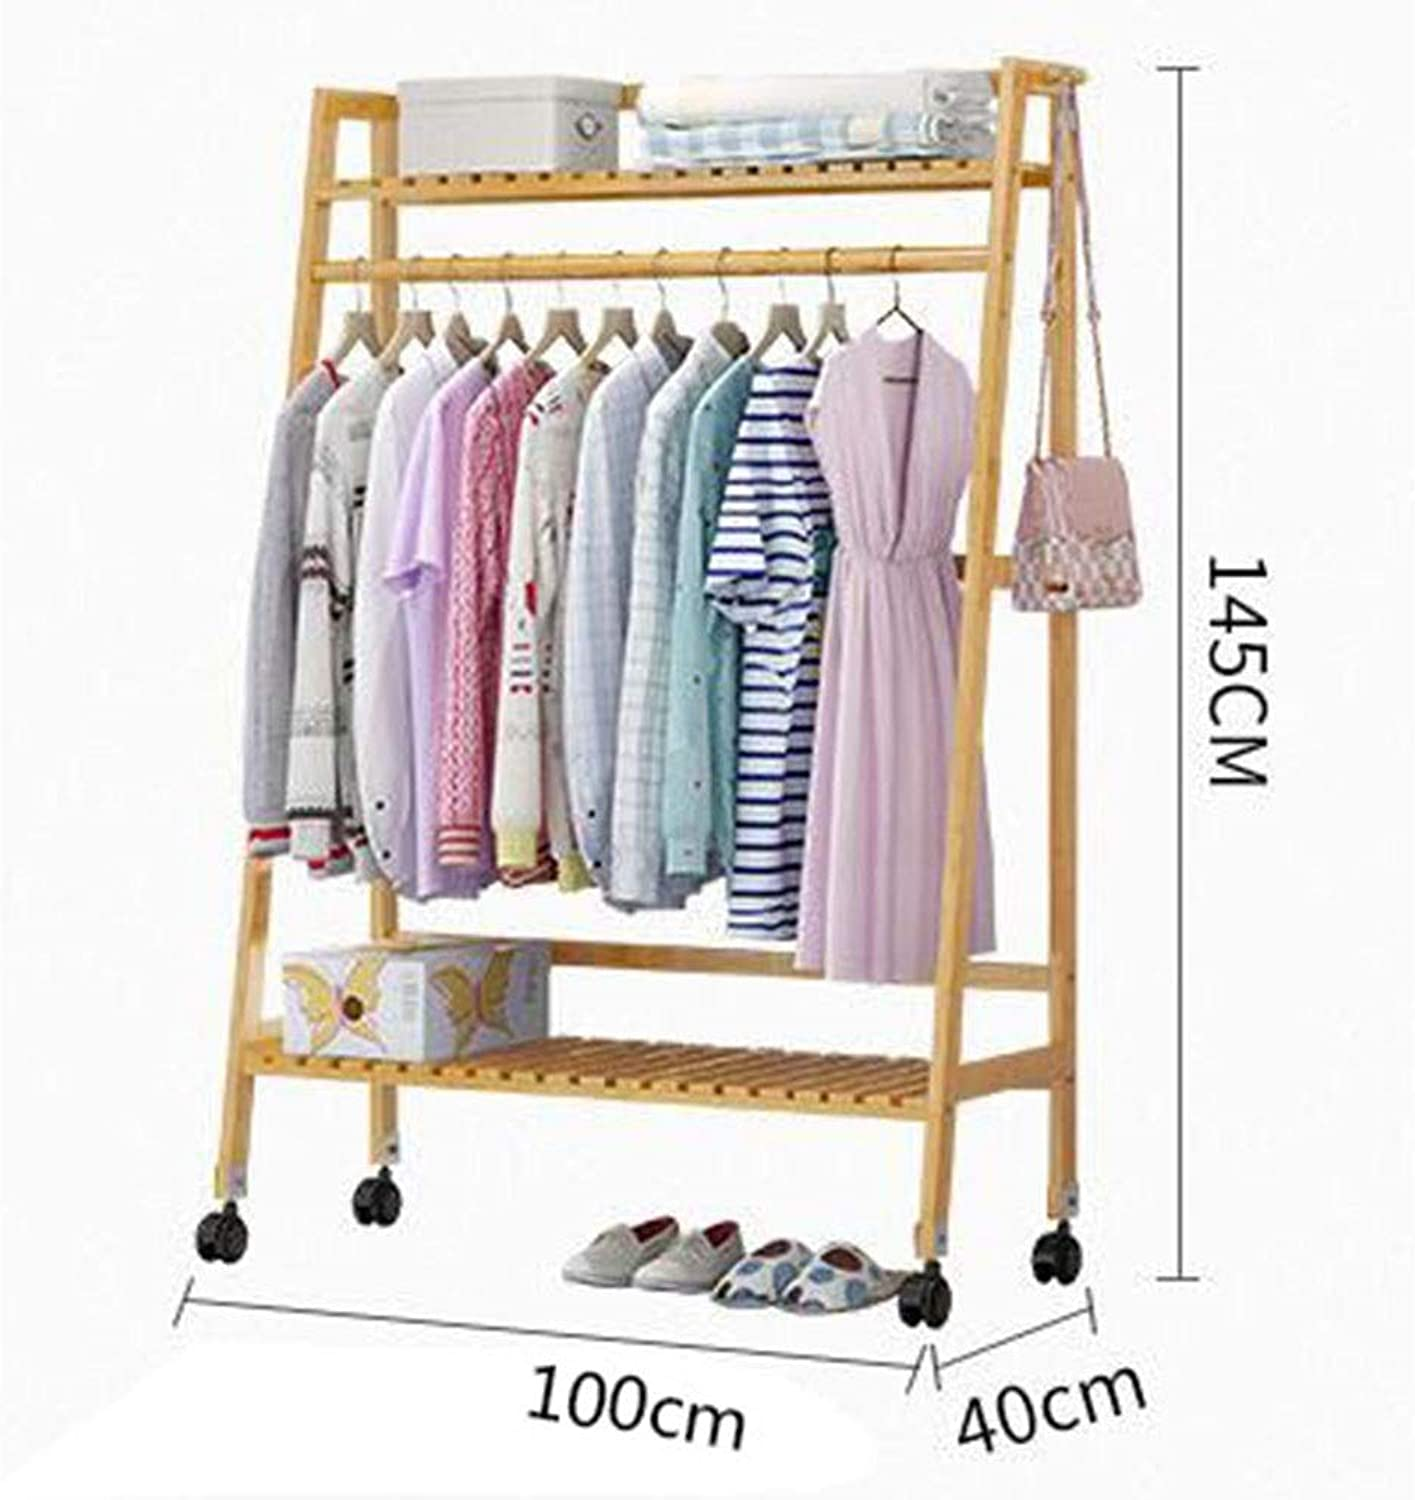 JIAYING Garment Rolling Rack,Bamboo Garment Coat Clothes Hanging Heavy Duty Rack with top Shelf and 1-Tier shoes Clothing Storage Organizer Shelves (Size   100×40×145CM)